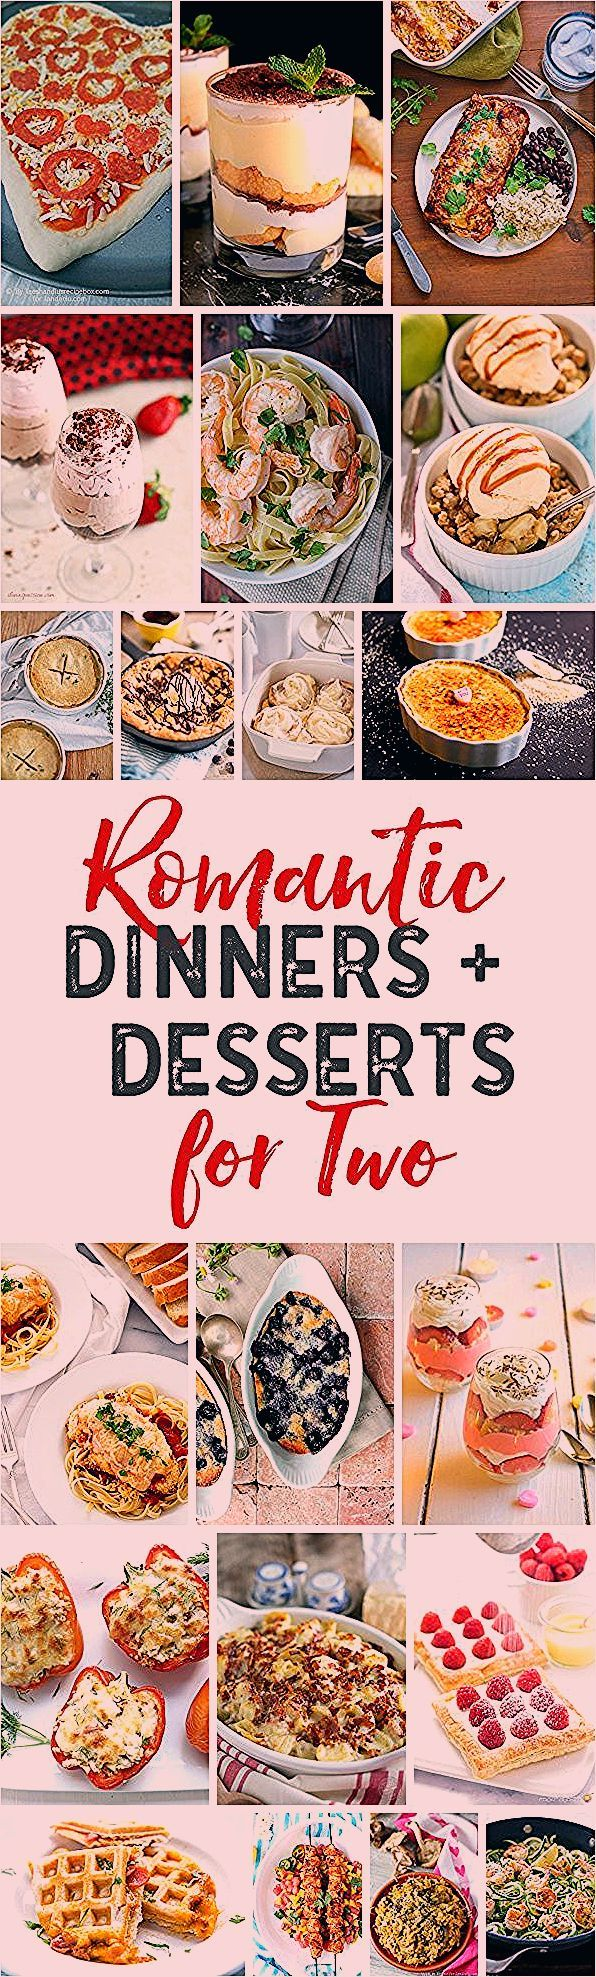 Photo of Romantic Desserts and Dinner for Two